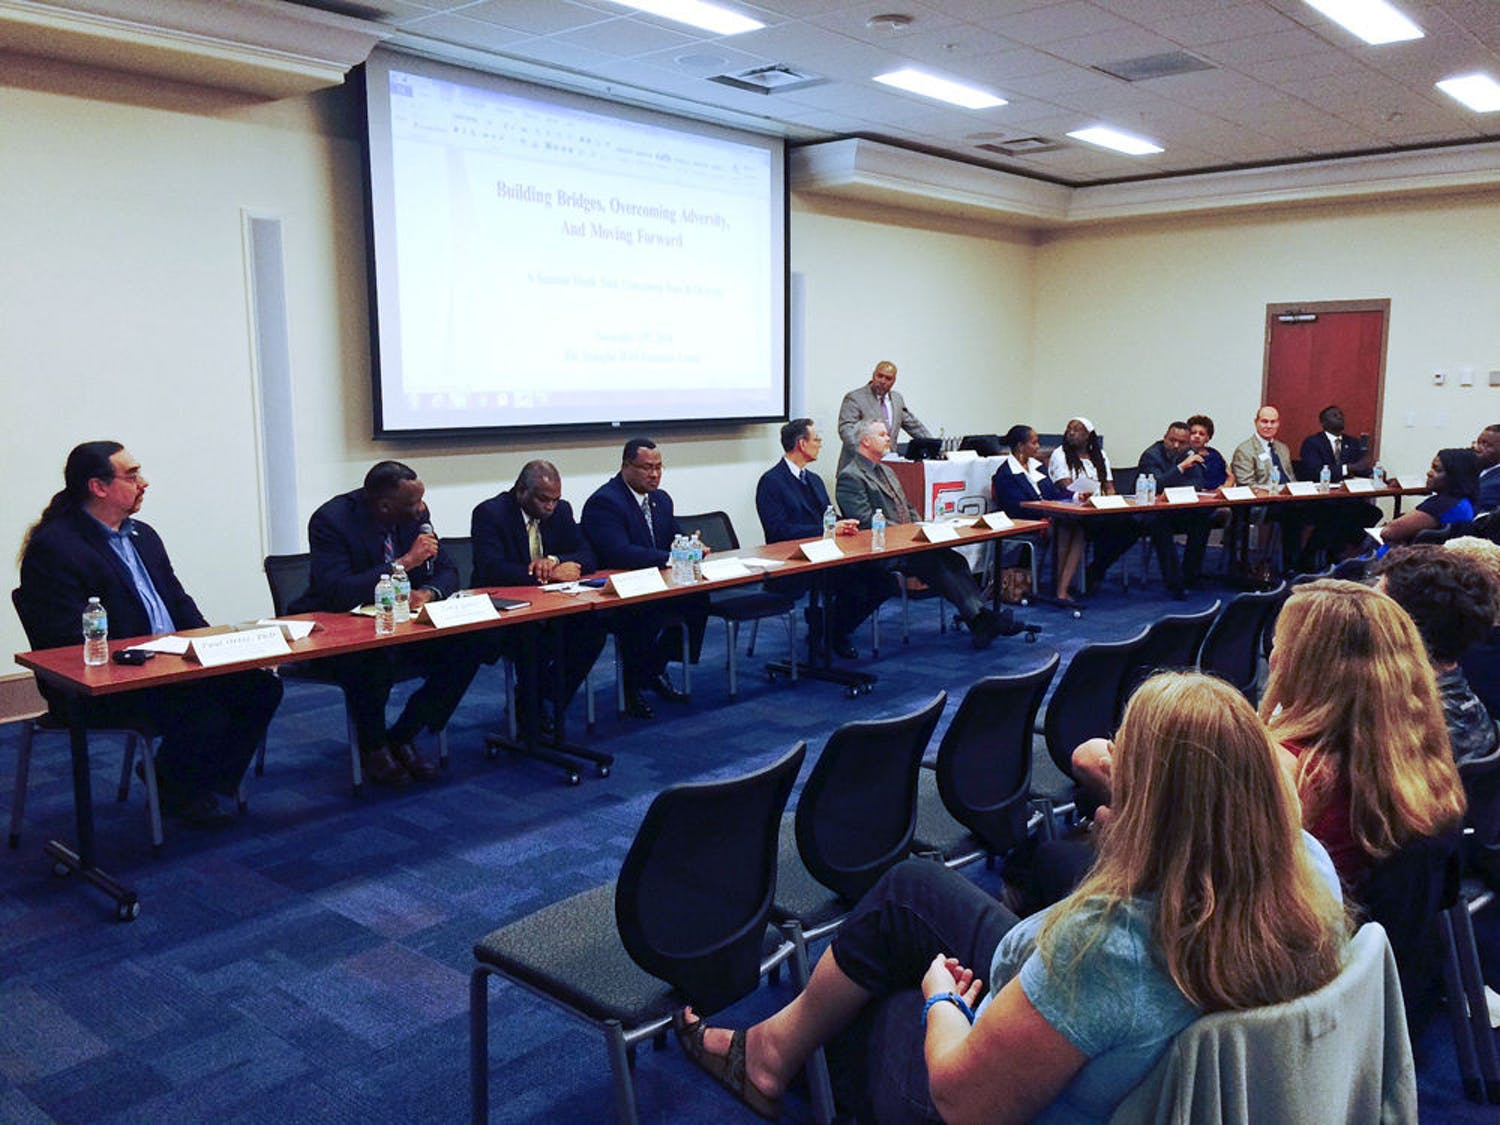 The Building Bridges, Overcoming Adversity And Moving Forward panel on Thursday highlighted discrimination in Gainesville.